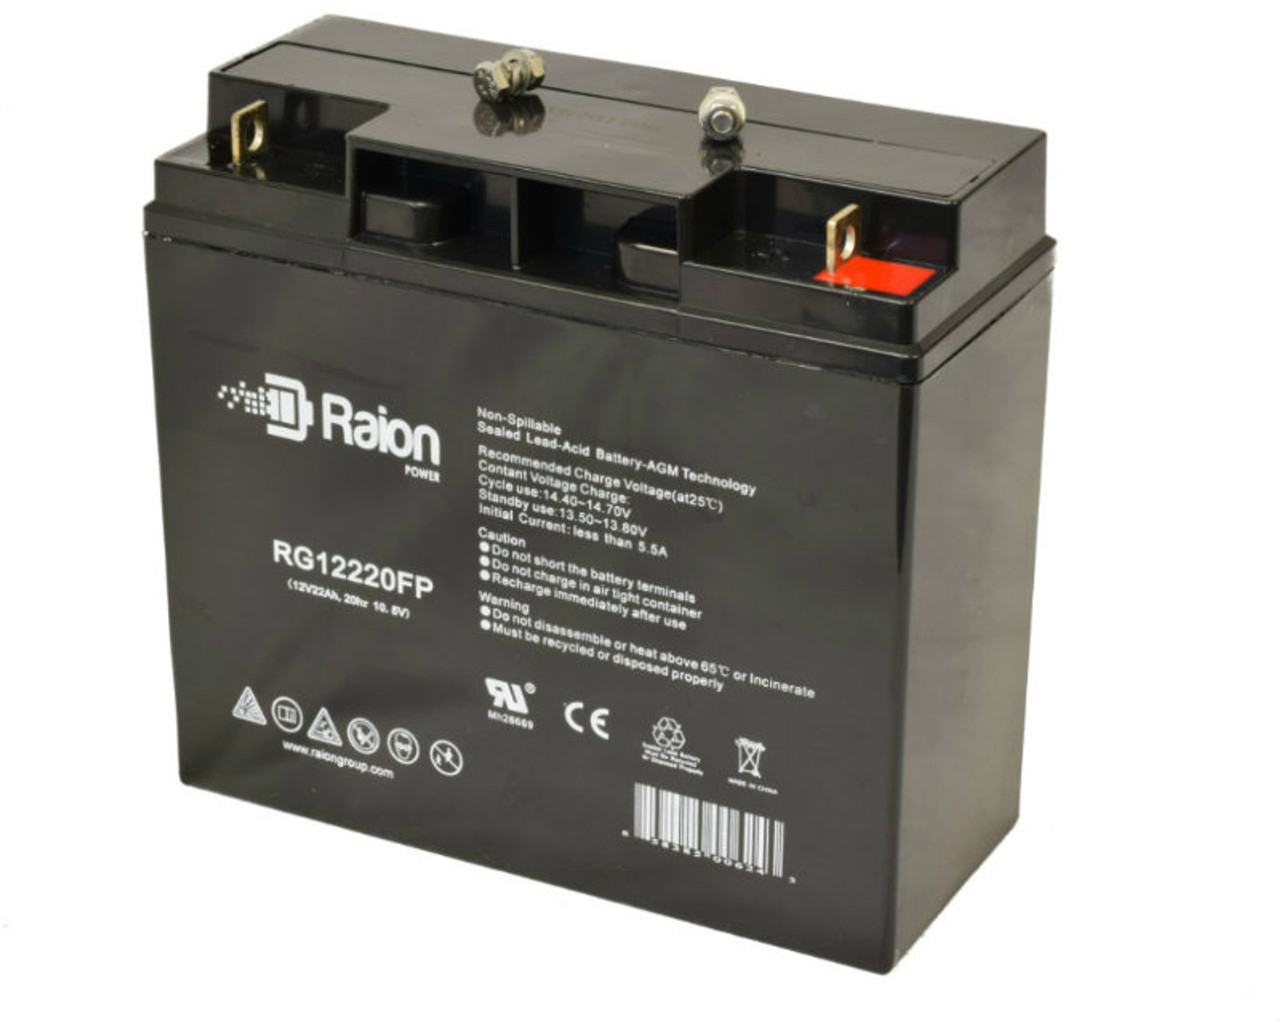 RG12220FP Sealed Lead Acid Battery Pack For Merits MP3-Junior Mobility Scooter